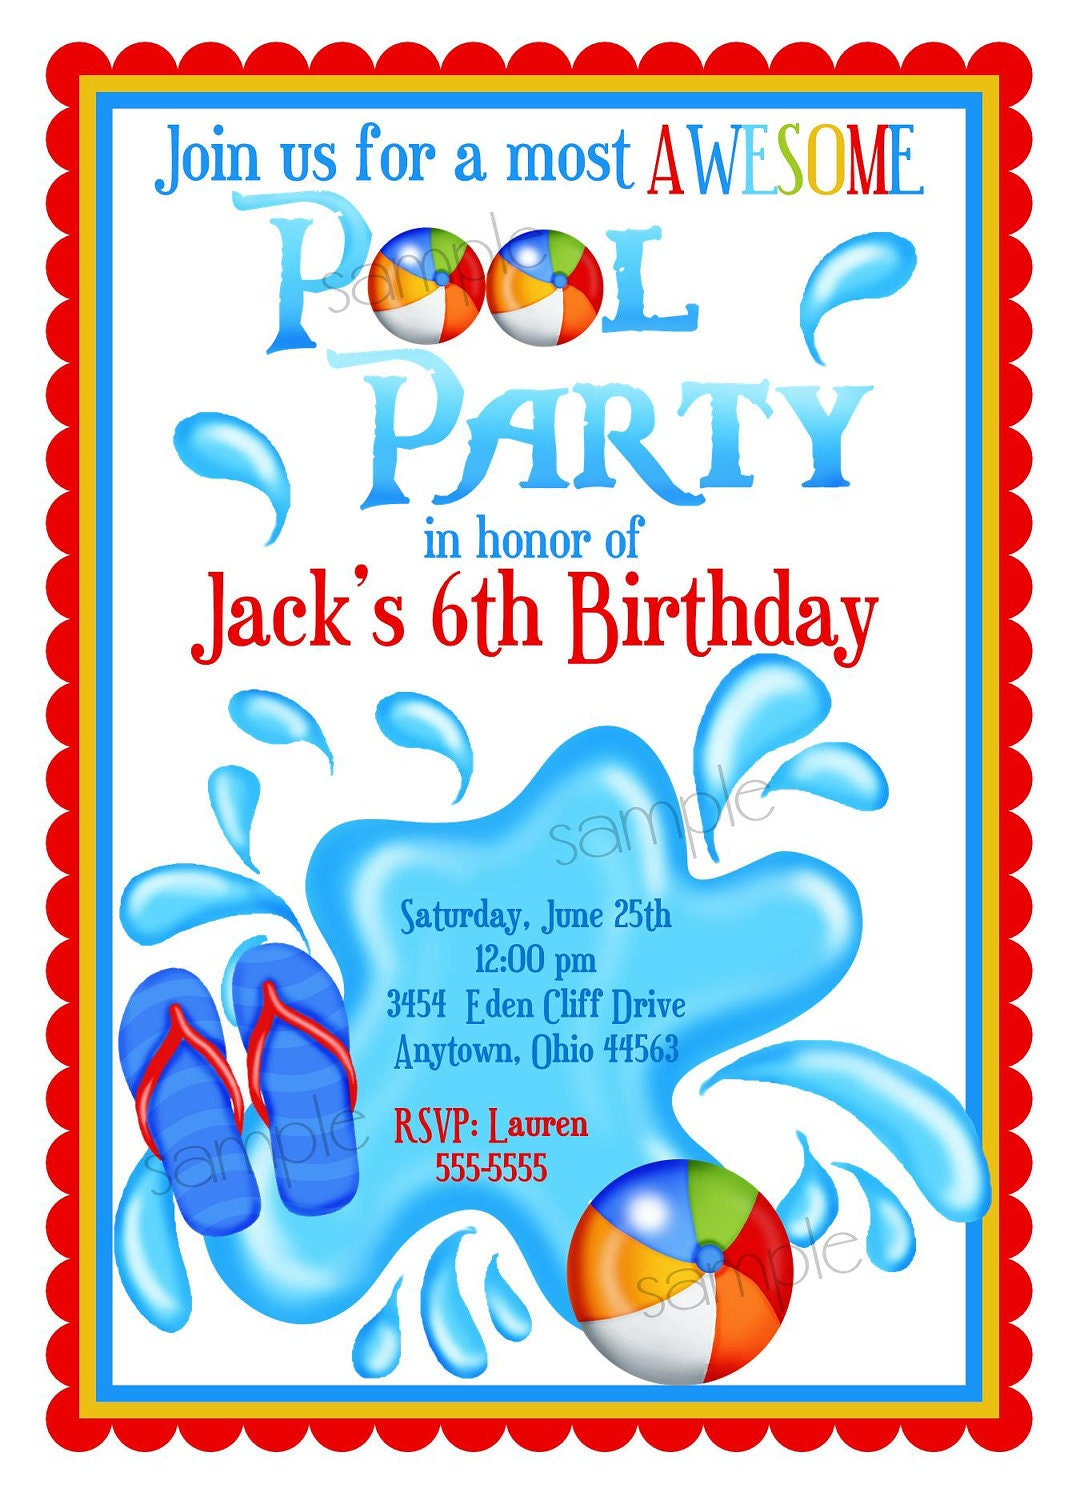 Pool Party Invitations Personalized Invitations Boys. Ms Access Timesheet Database Template. Resignation From Board Of Directors Template. Quick Job Interview Tips Template. Sample Resignation Letter From Board Of Directors Template. Computer Inventory Excel Template. Print A Calendar September 2018 Template. Academic Curriculum Vitae Template. Trainer Resume